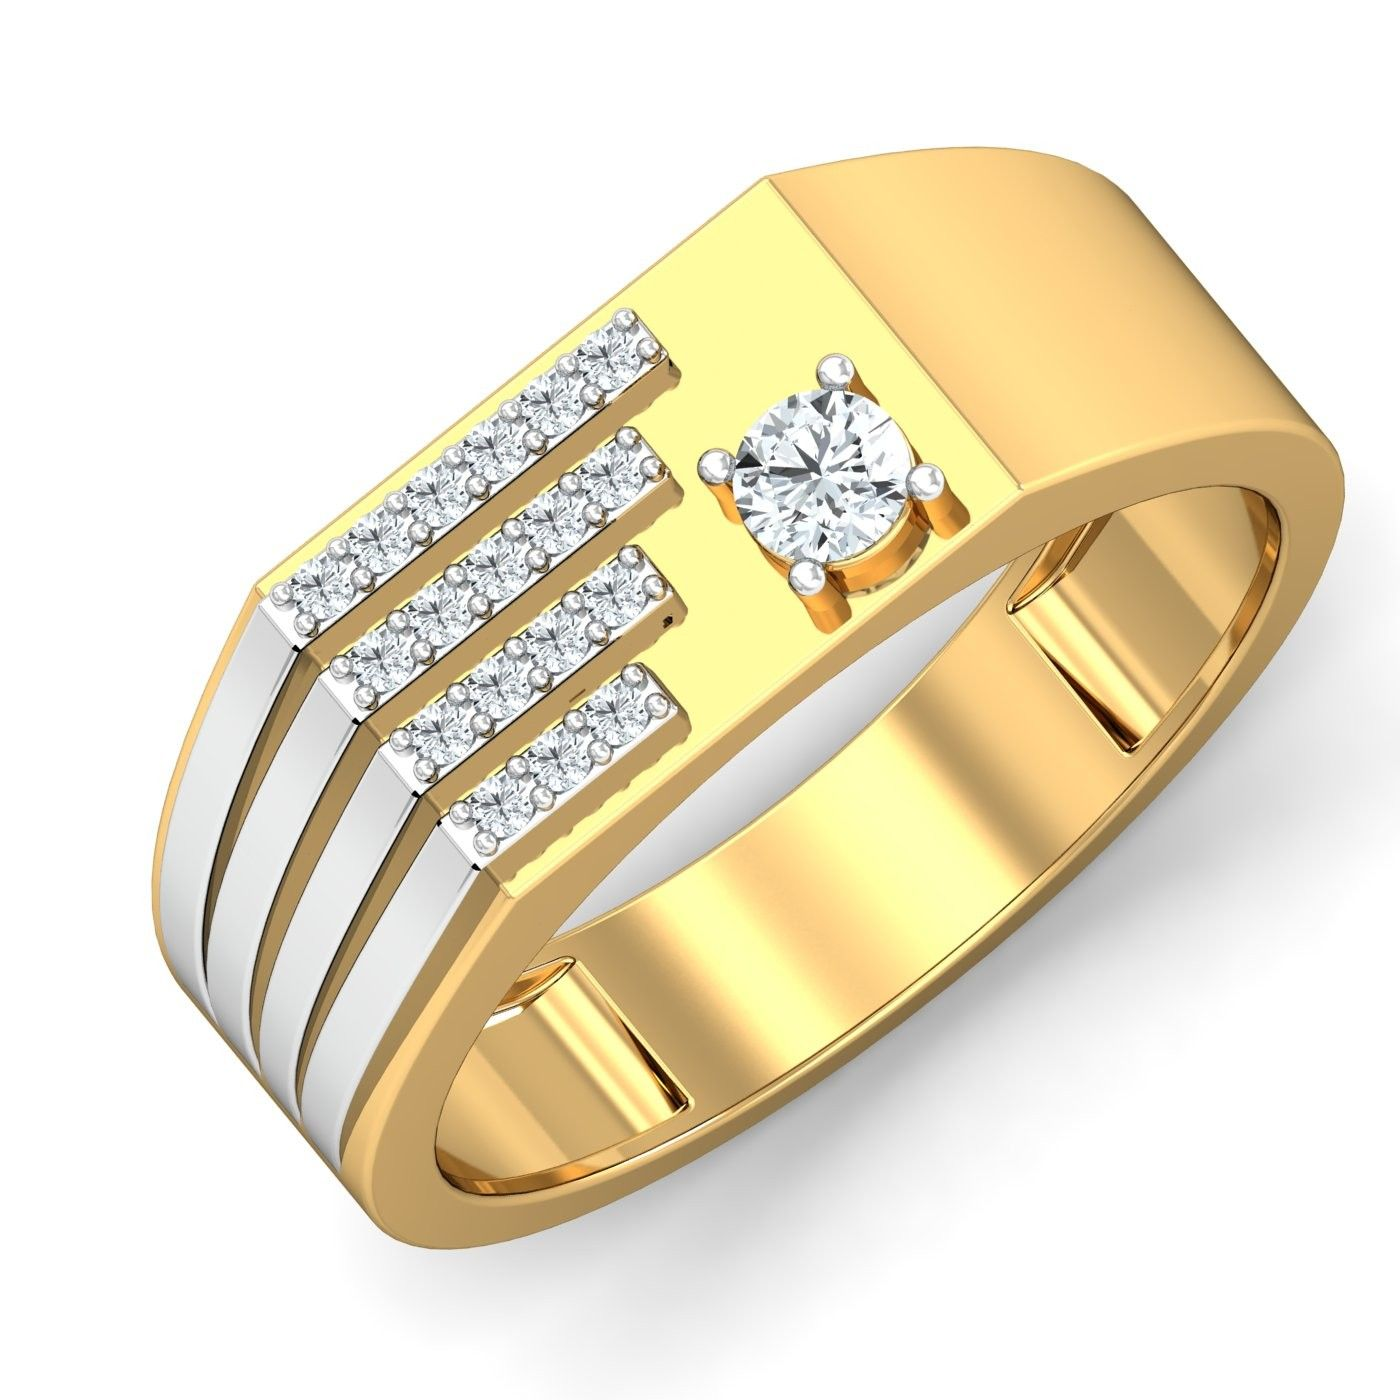 beautiful goldfinger gold more male find steel about stainless information of bands band romantic rings designer fresh